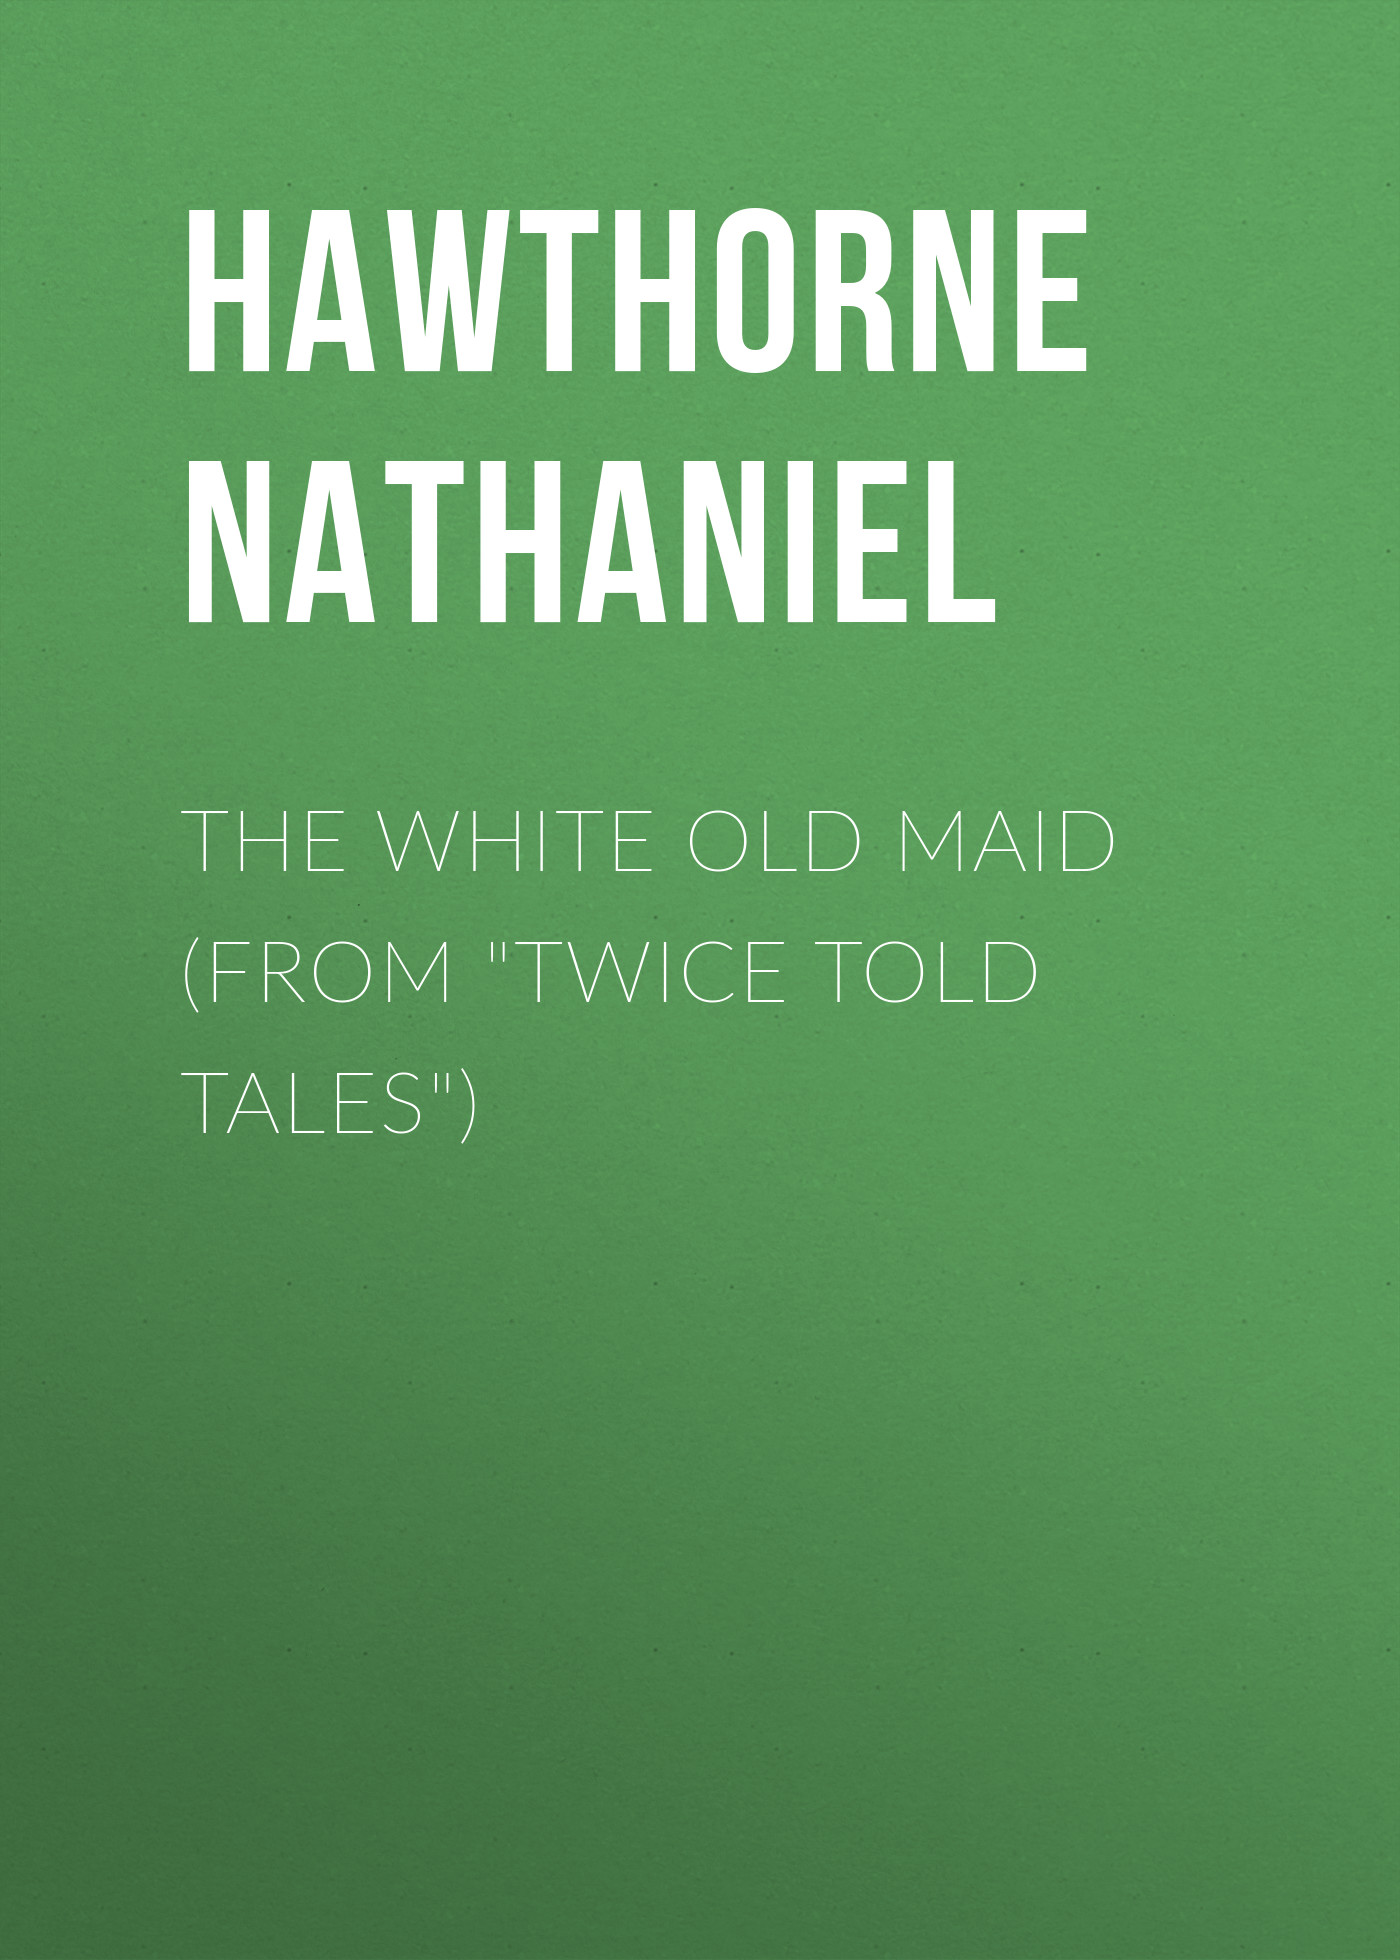 Hawthorne Nathaniel The White Old Maid (From Twice Told Tales) hawthorne nathaniel the threefold destiny from twice told tales